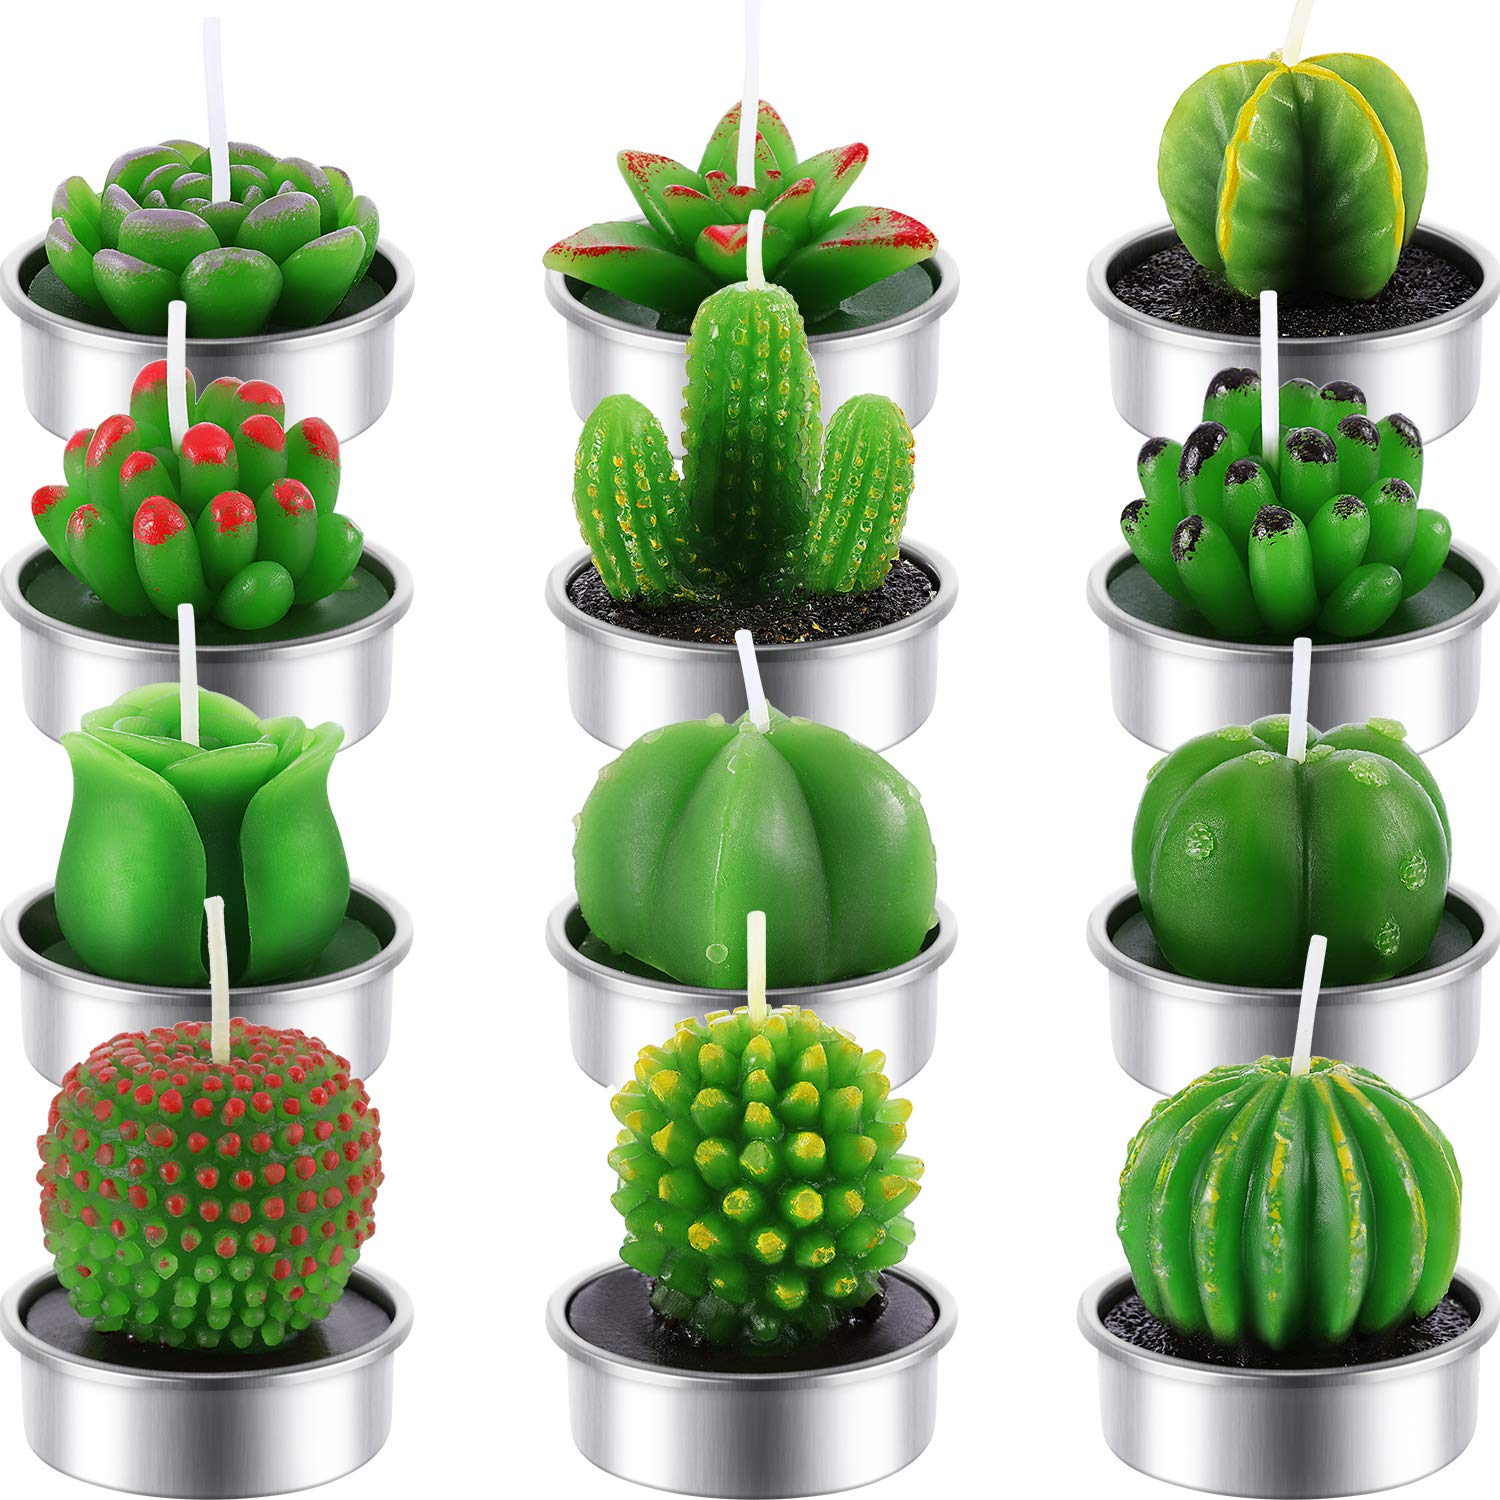 Tatuo 12 Pieces Cactus Candles Succulent Cactus Rose Tealight Handmade Candles for Teatime Spa Home Party Wedding Decoration Gifts by Tatuo